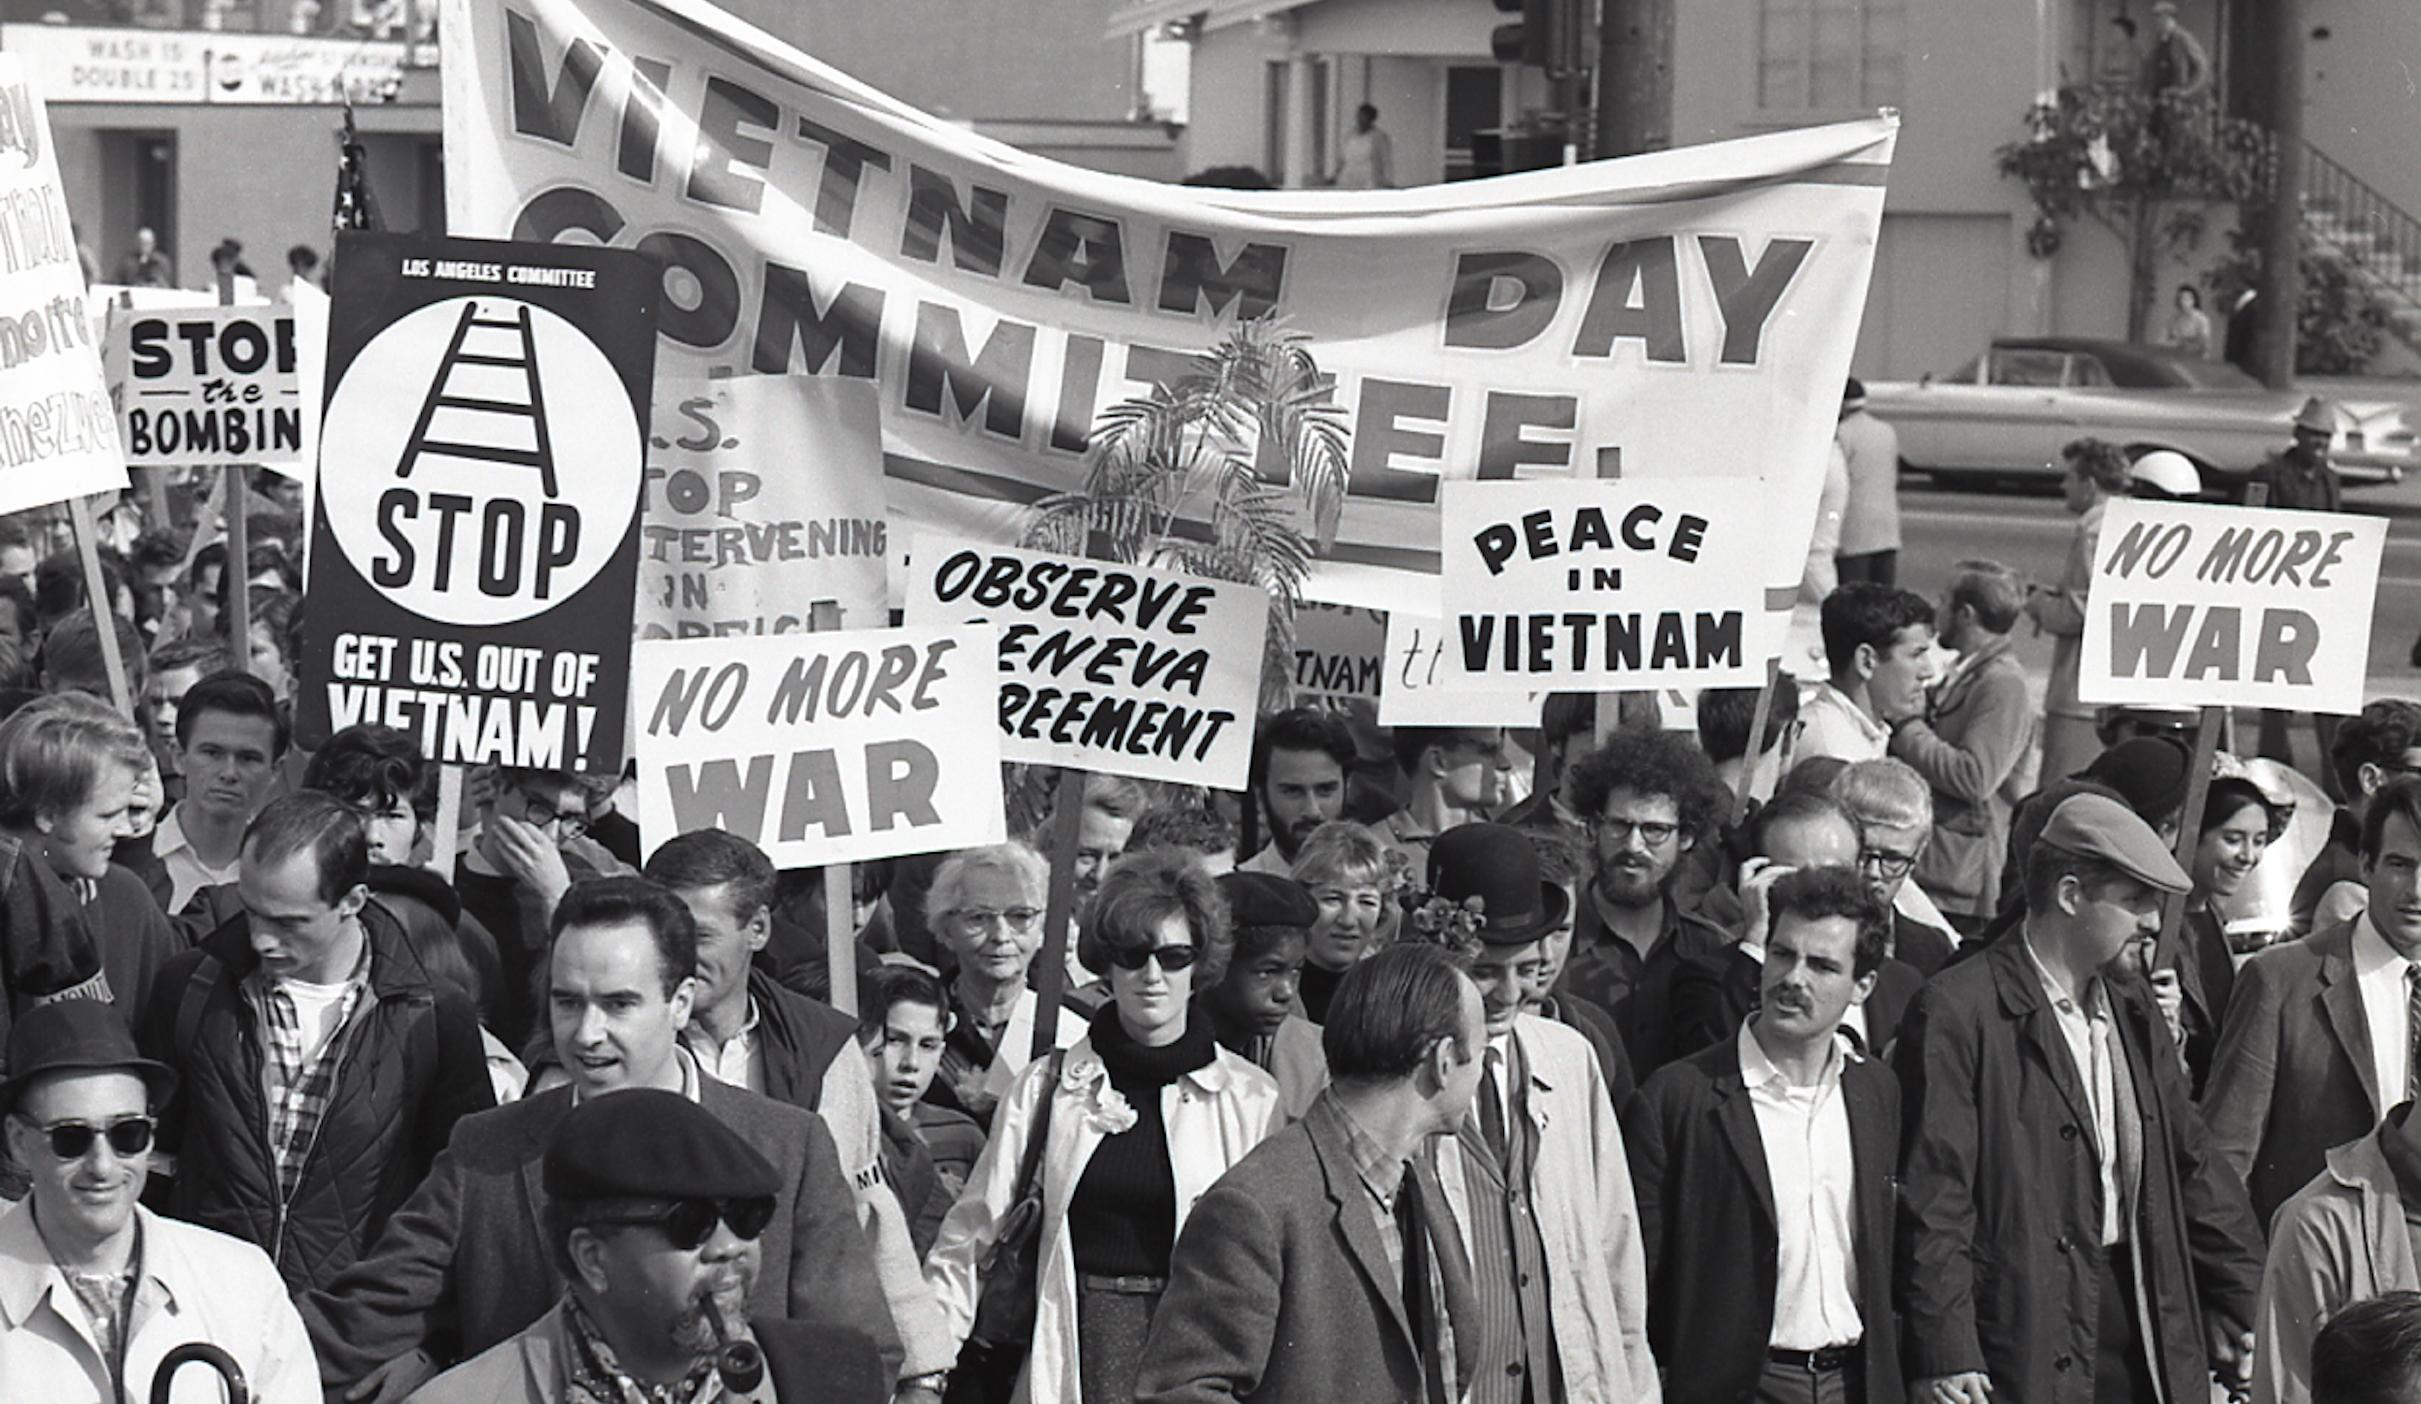 November 20, 1965, Vietnam Day Committe marches with Congressman John Burton, Jerry Rubin, Vietnam Veteran David Douglas Duncan, among other notables in the front. Francis Tandy (white haired elder of the peace movement) is visible under the banner.